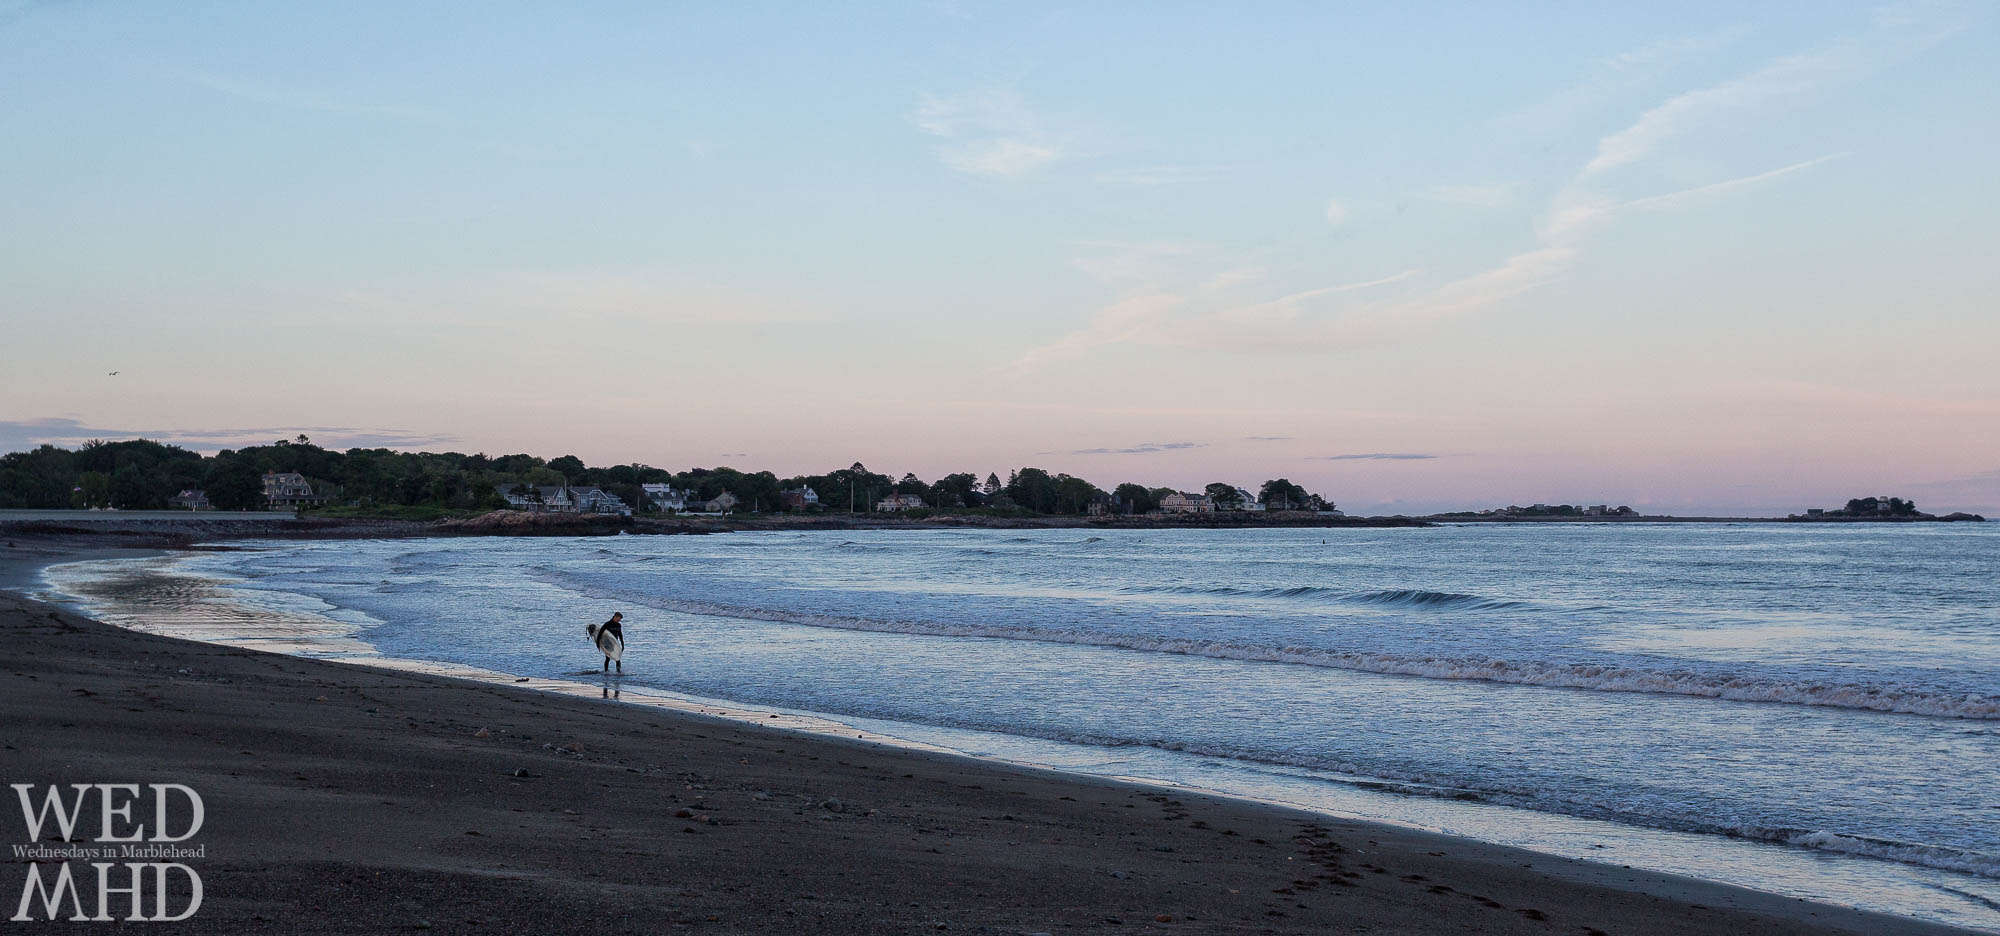 As Hurricane Teddy passed far to the East, dangerously high seas and wind gusts are predicted to create incredible surf conditions in Marblehead